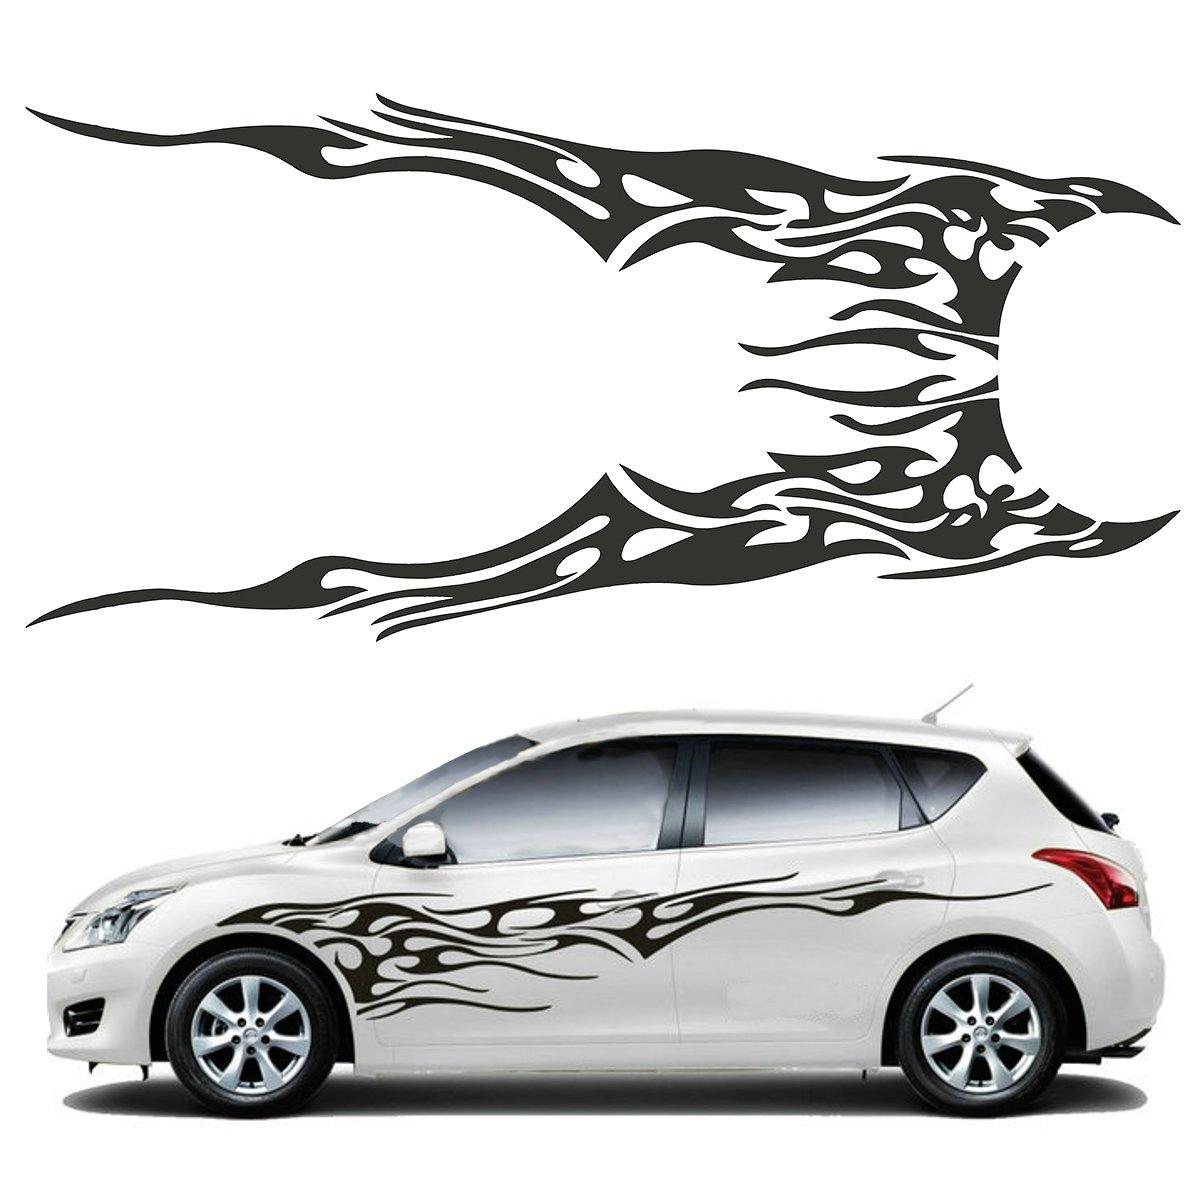 Pair Universal Car Side Body Vinyl Sticker Flame Large Graphics Decal DIY Decoration 210.5x48cm